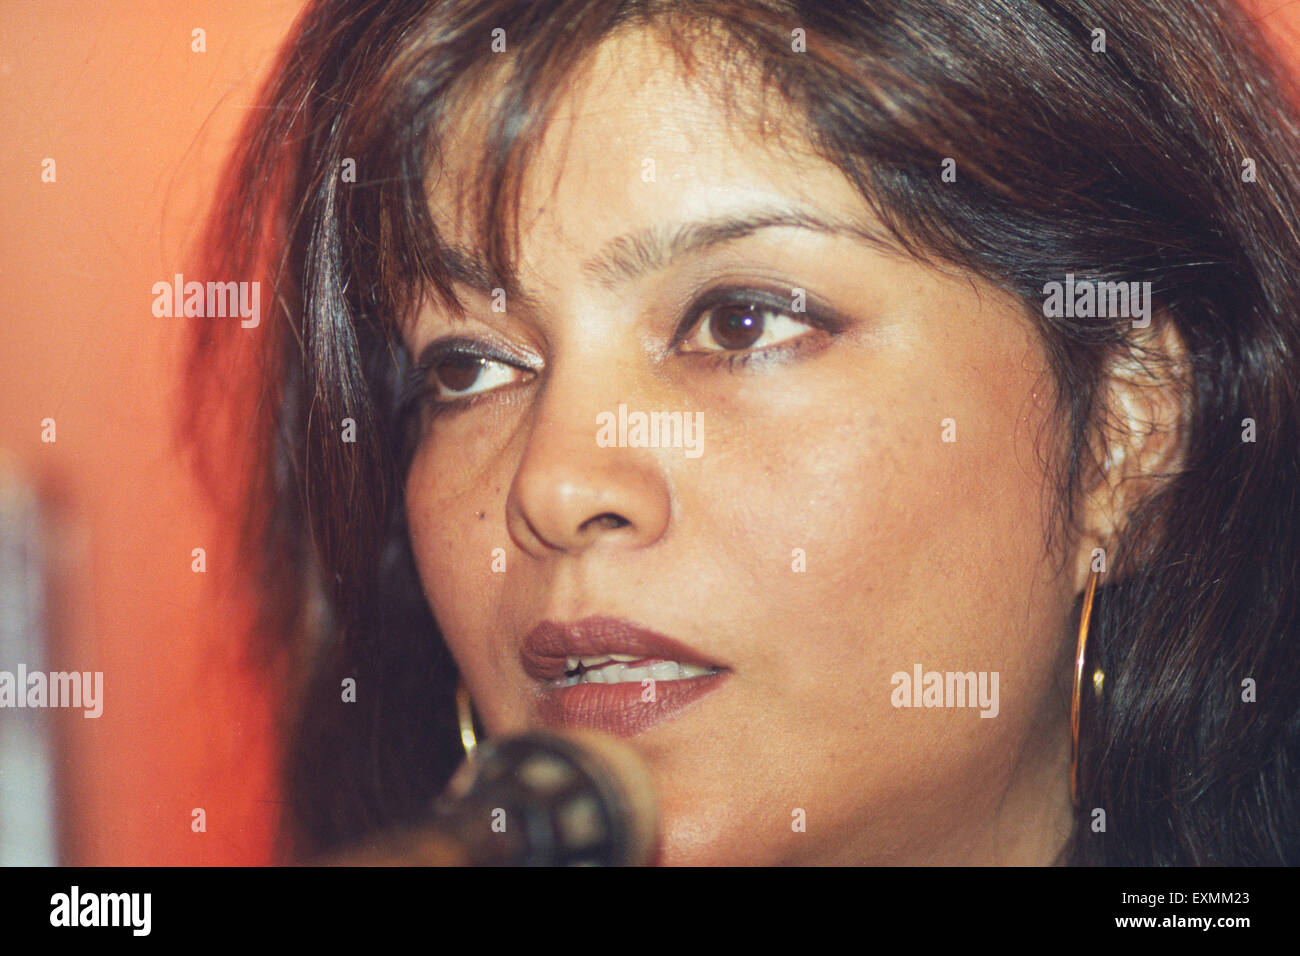 zeenat aman духиzeenat aman xatuba, zeenat aman mp3, zeenat aman 2017, zeenat aman духи, zeenat aman foto, zeenat aman kimdir, zeenat aman song, zeenat aman 2015, zeenat aman hindi, zeenat aman age, zeenat aman wikipedia, zeenat aman date of birth, zeenat aman haqqinda, zeenat aman 2016, zeenat aman heyati, zeenat aman биография, zeenat aman xatuba mp3, zeenat aman alibaba, zeenat aman laila, zeenat aman laila o laila